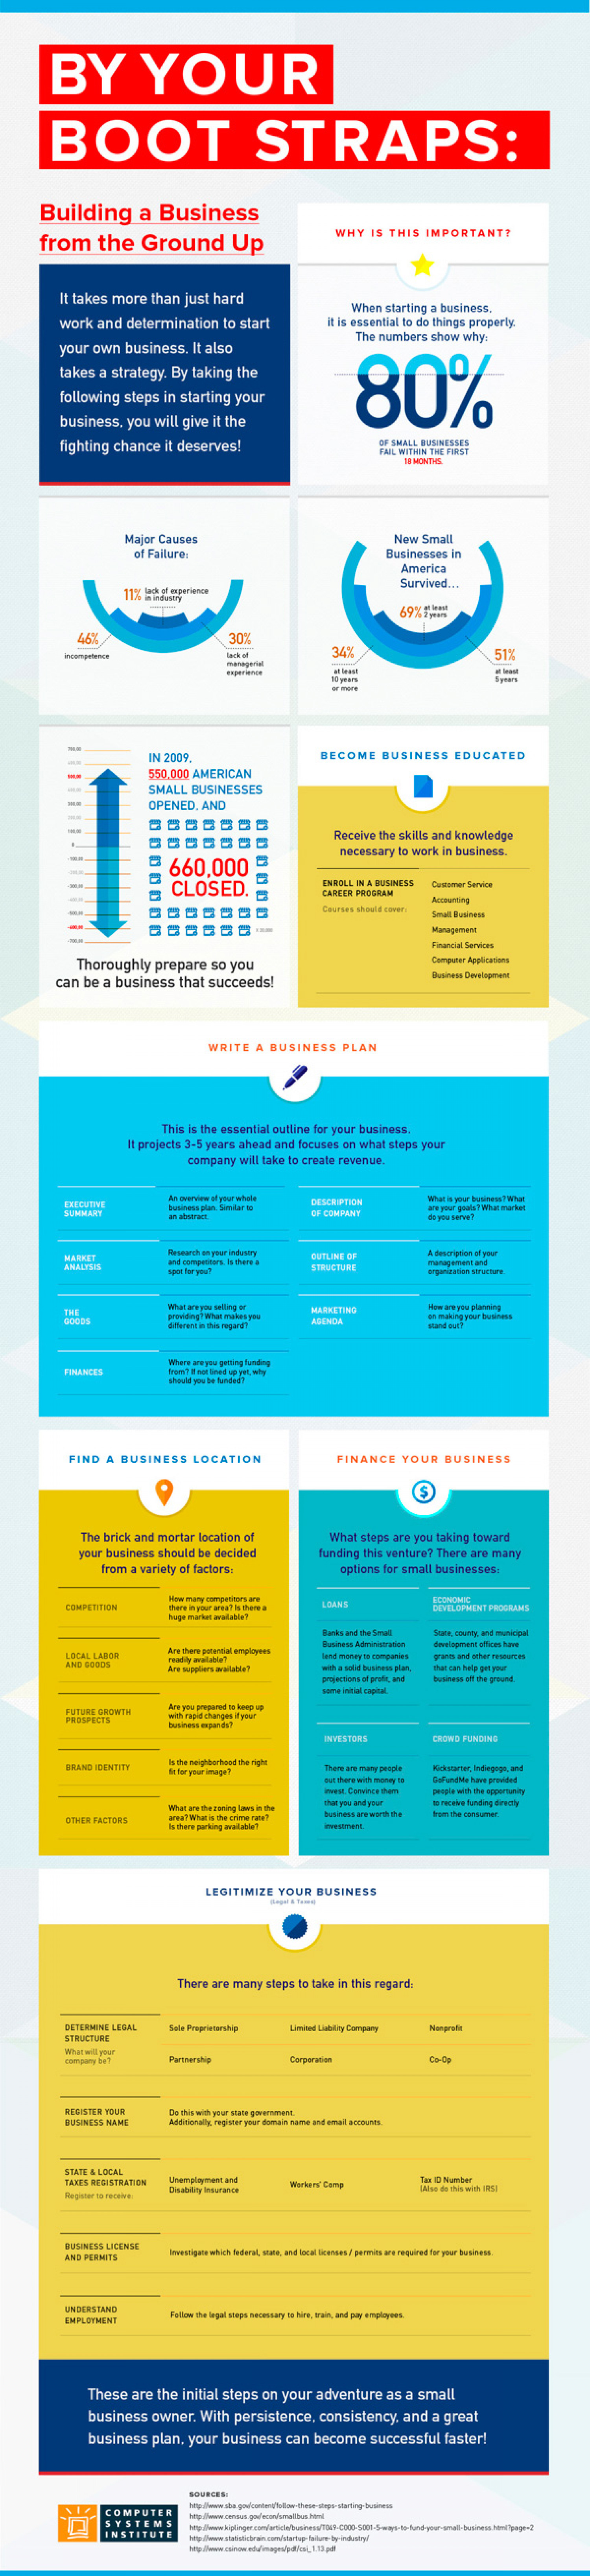 By Your Boot Straps: Building a Business From the Ground Up Infographic